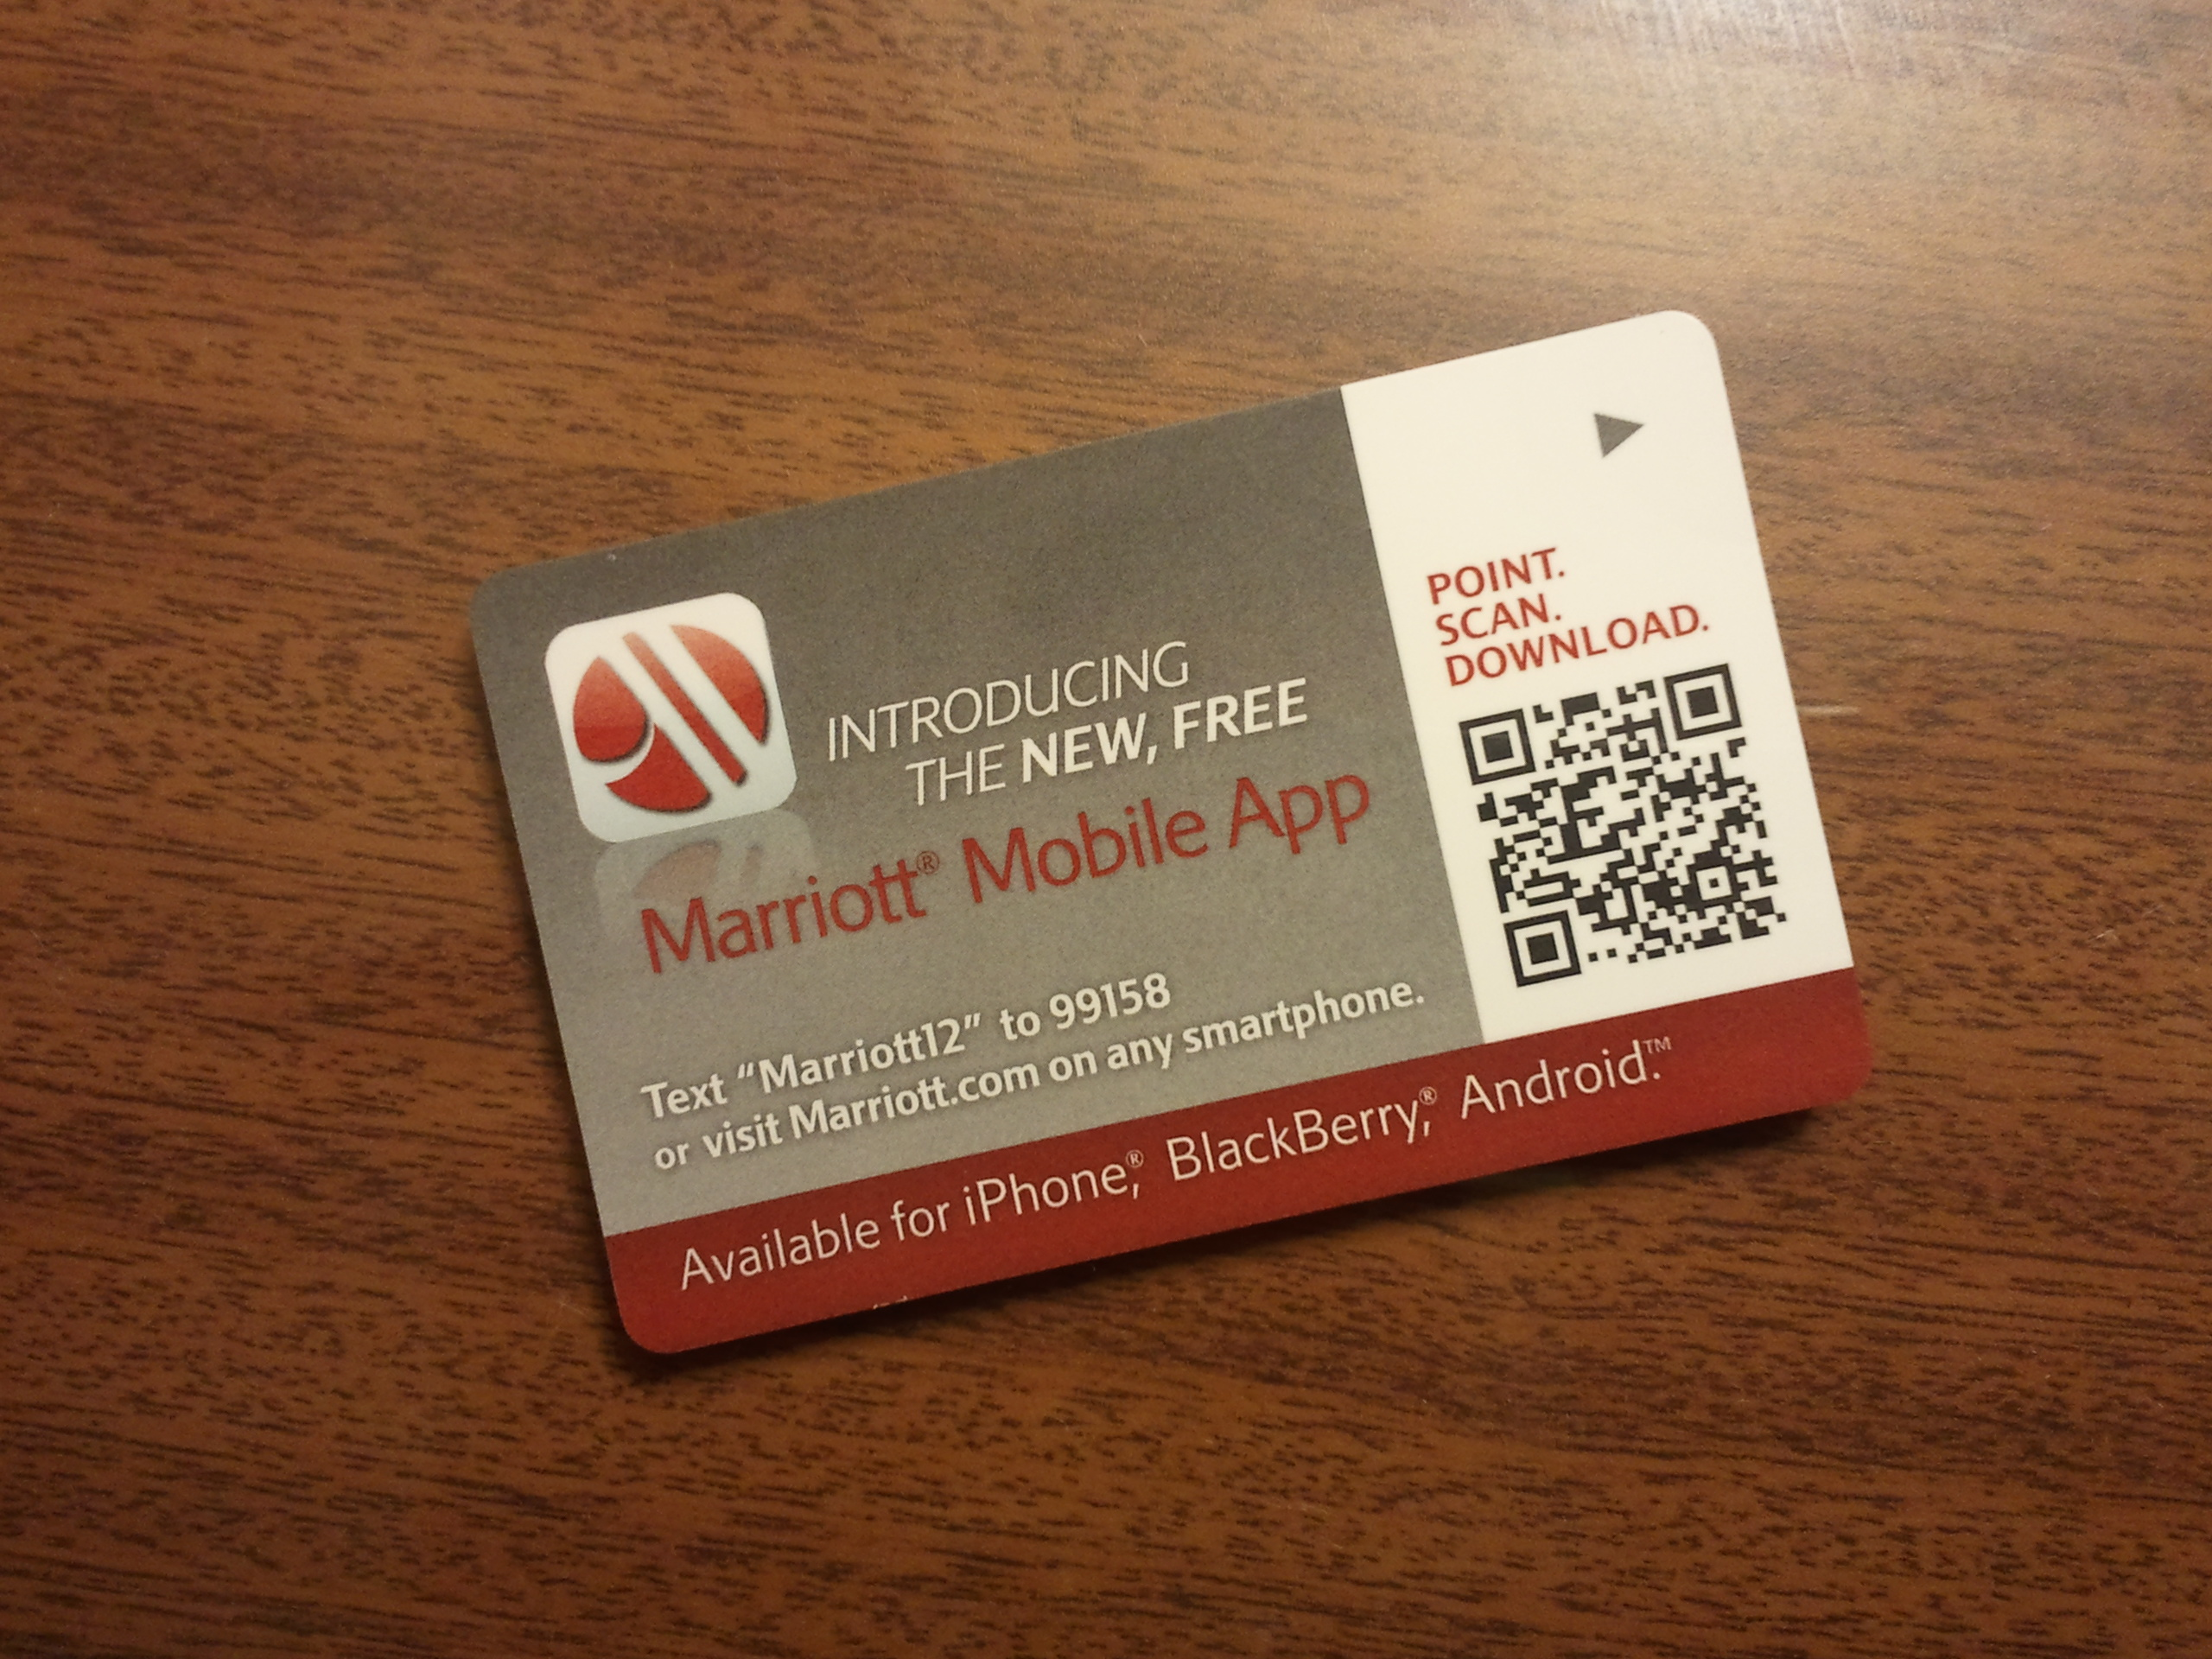 Missing Persuasion: Marriott Mobile App